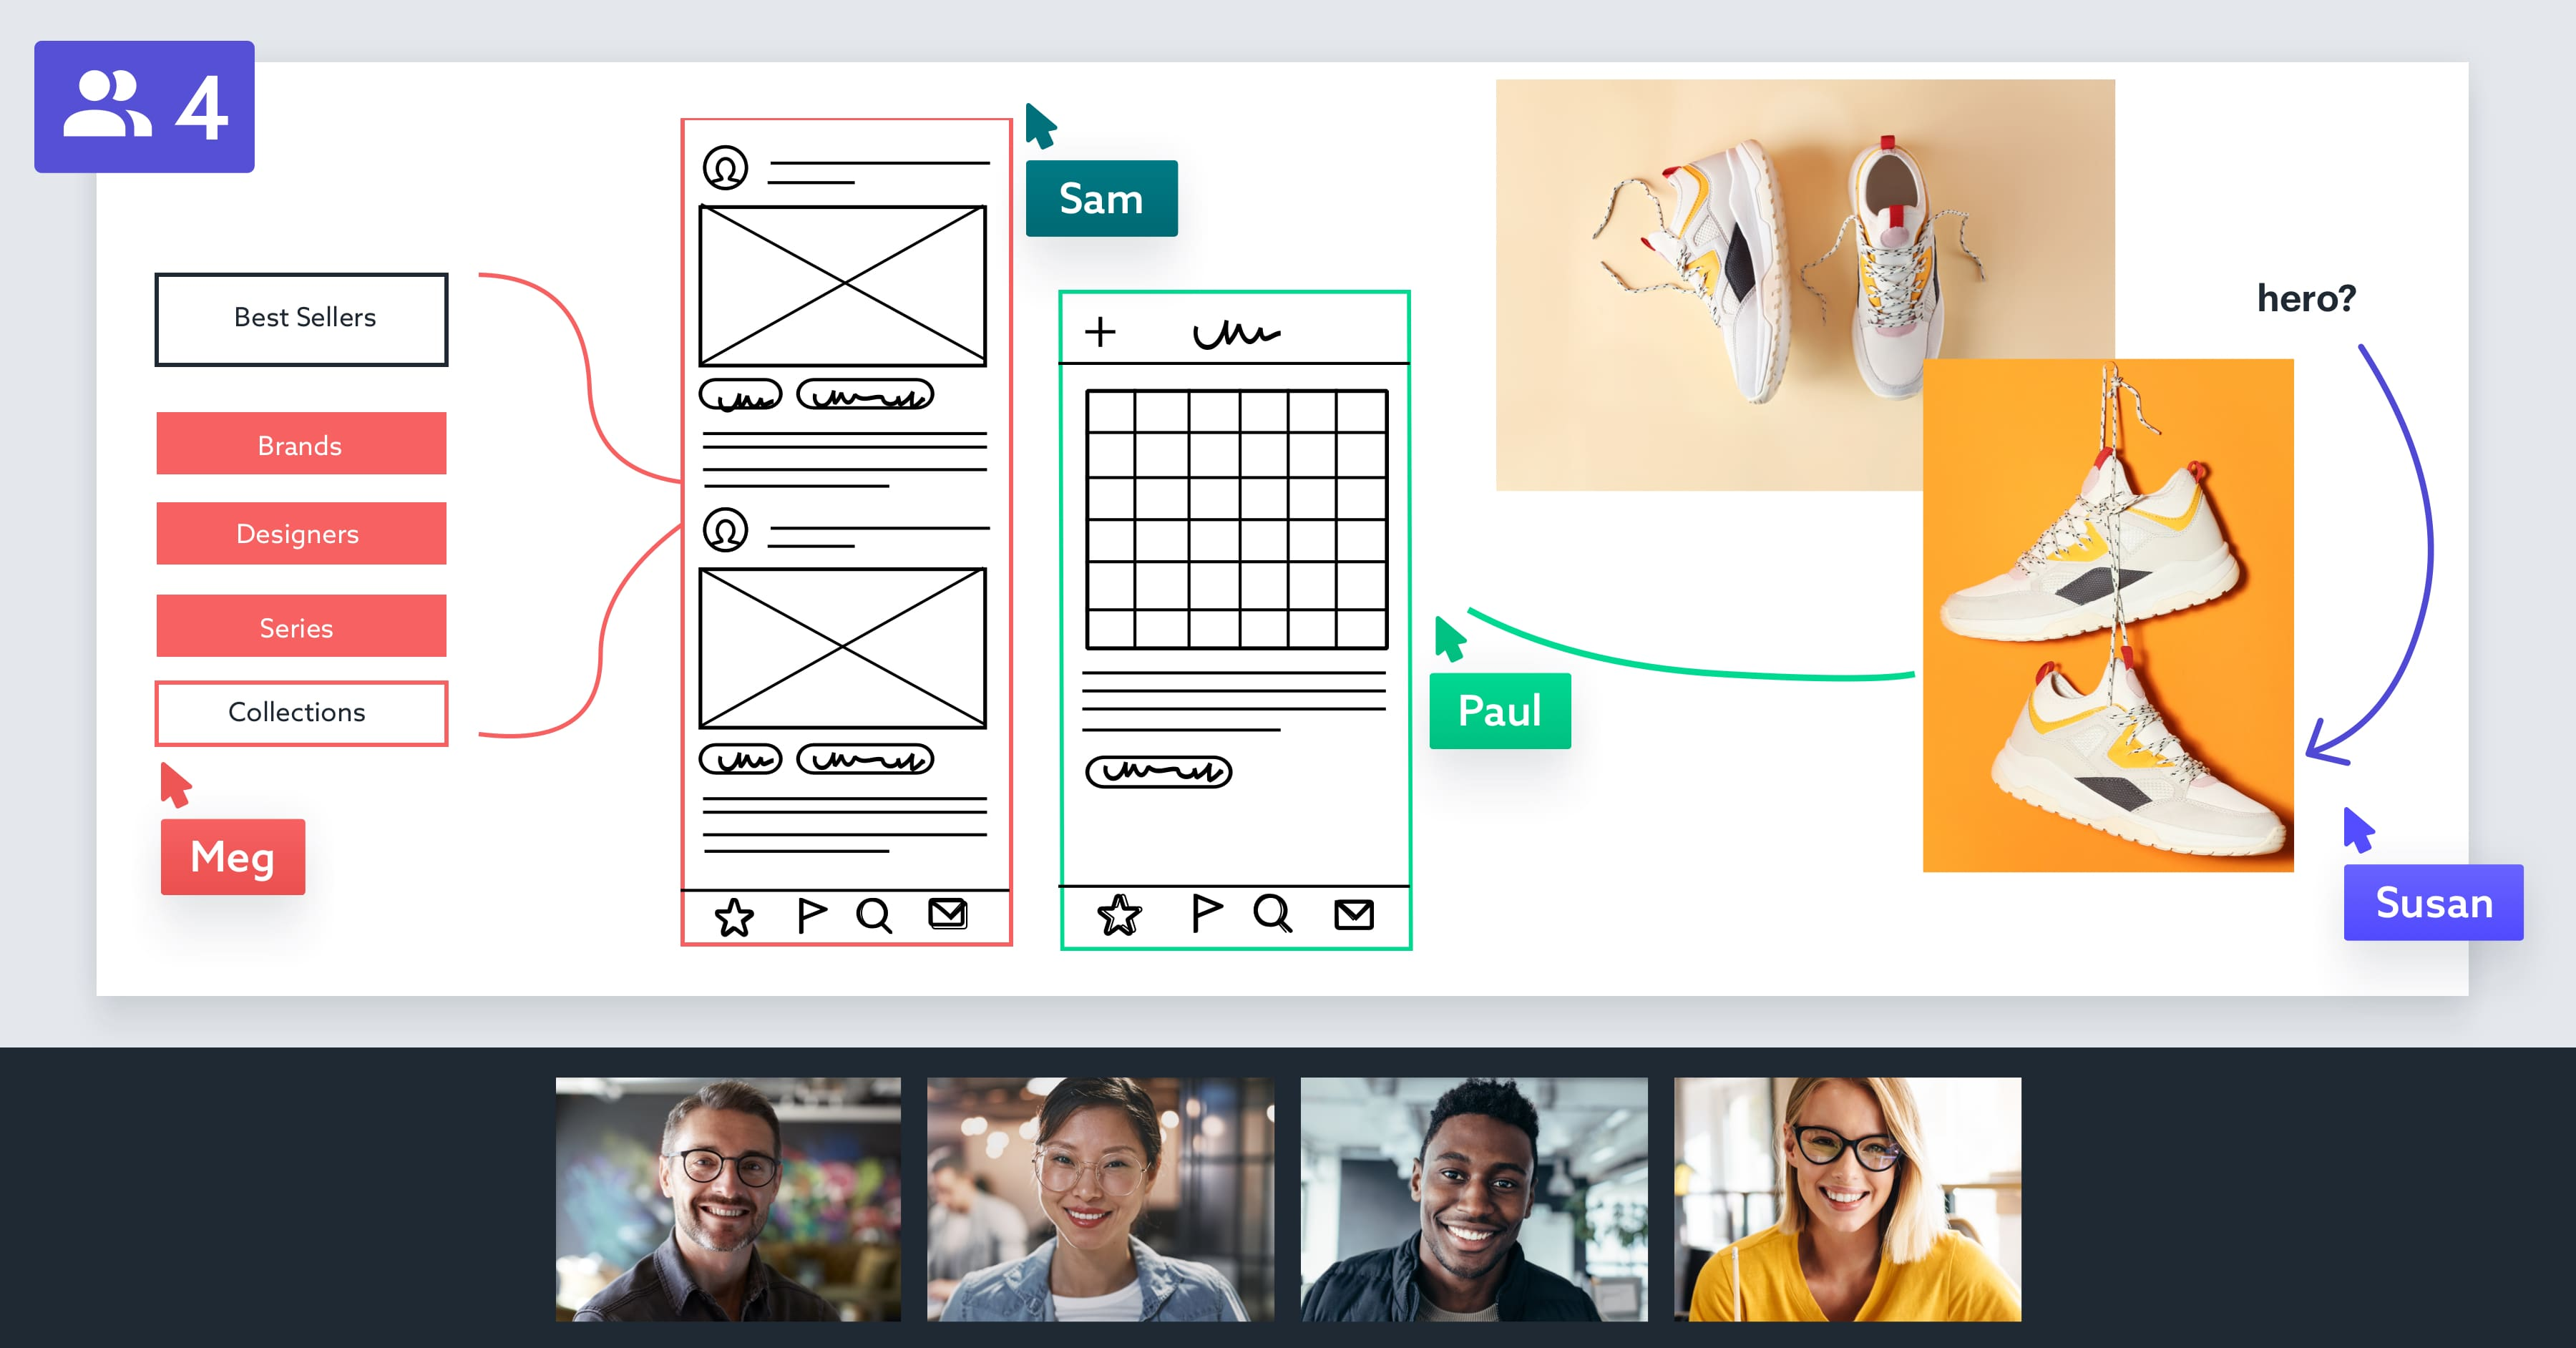 A screenshot of a digital whiteboard being shared in a video meeting